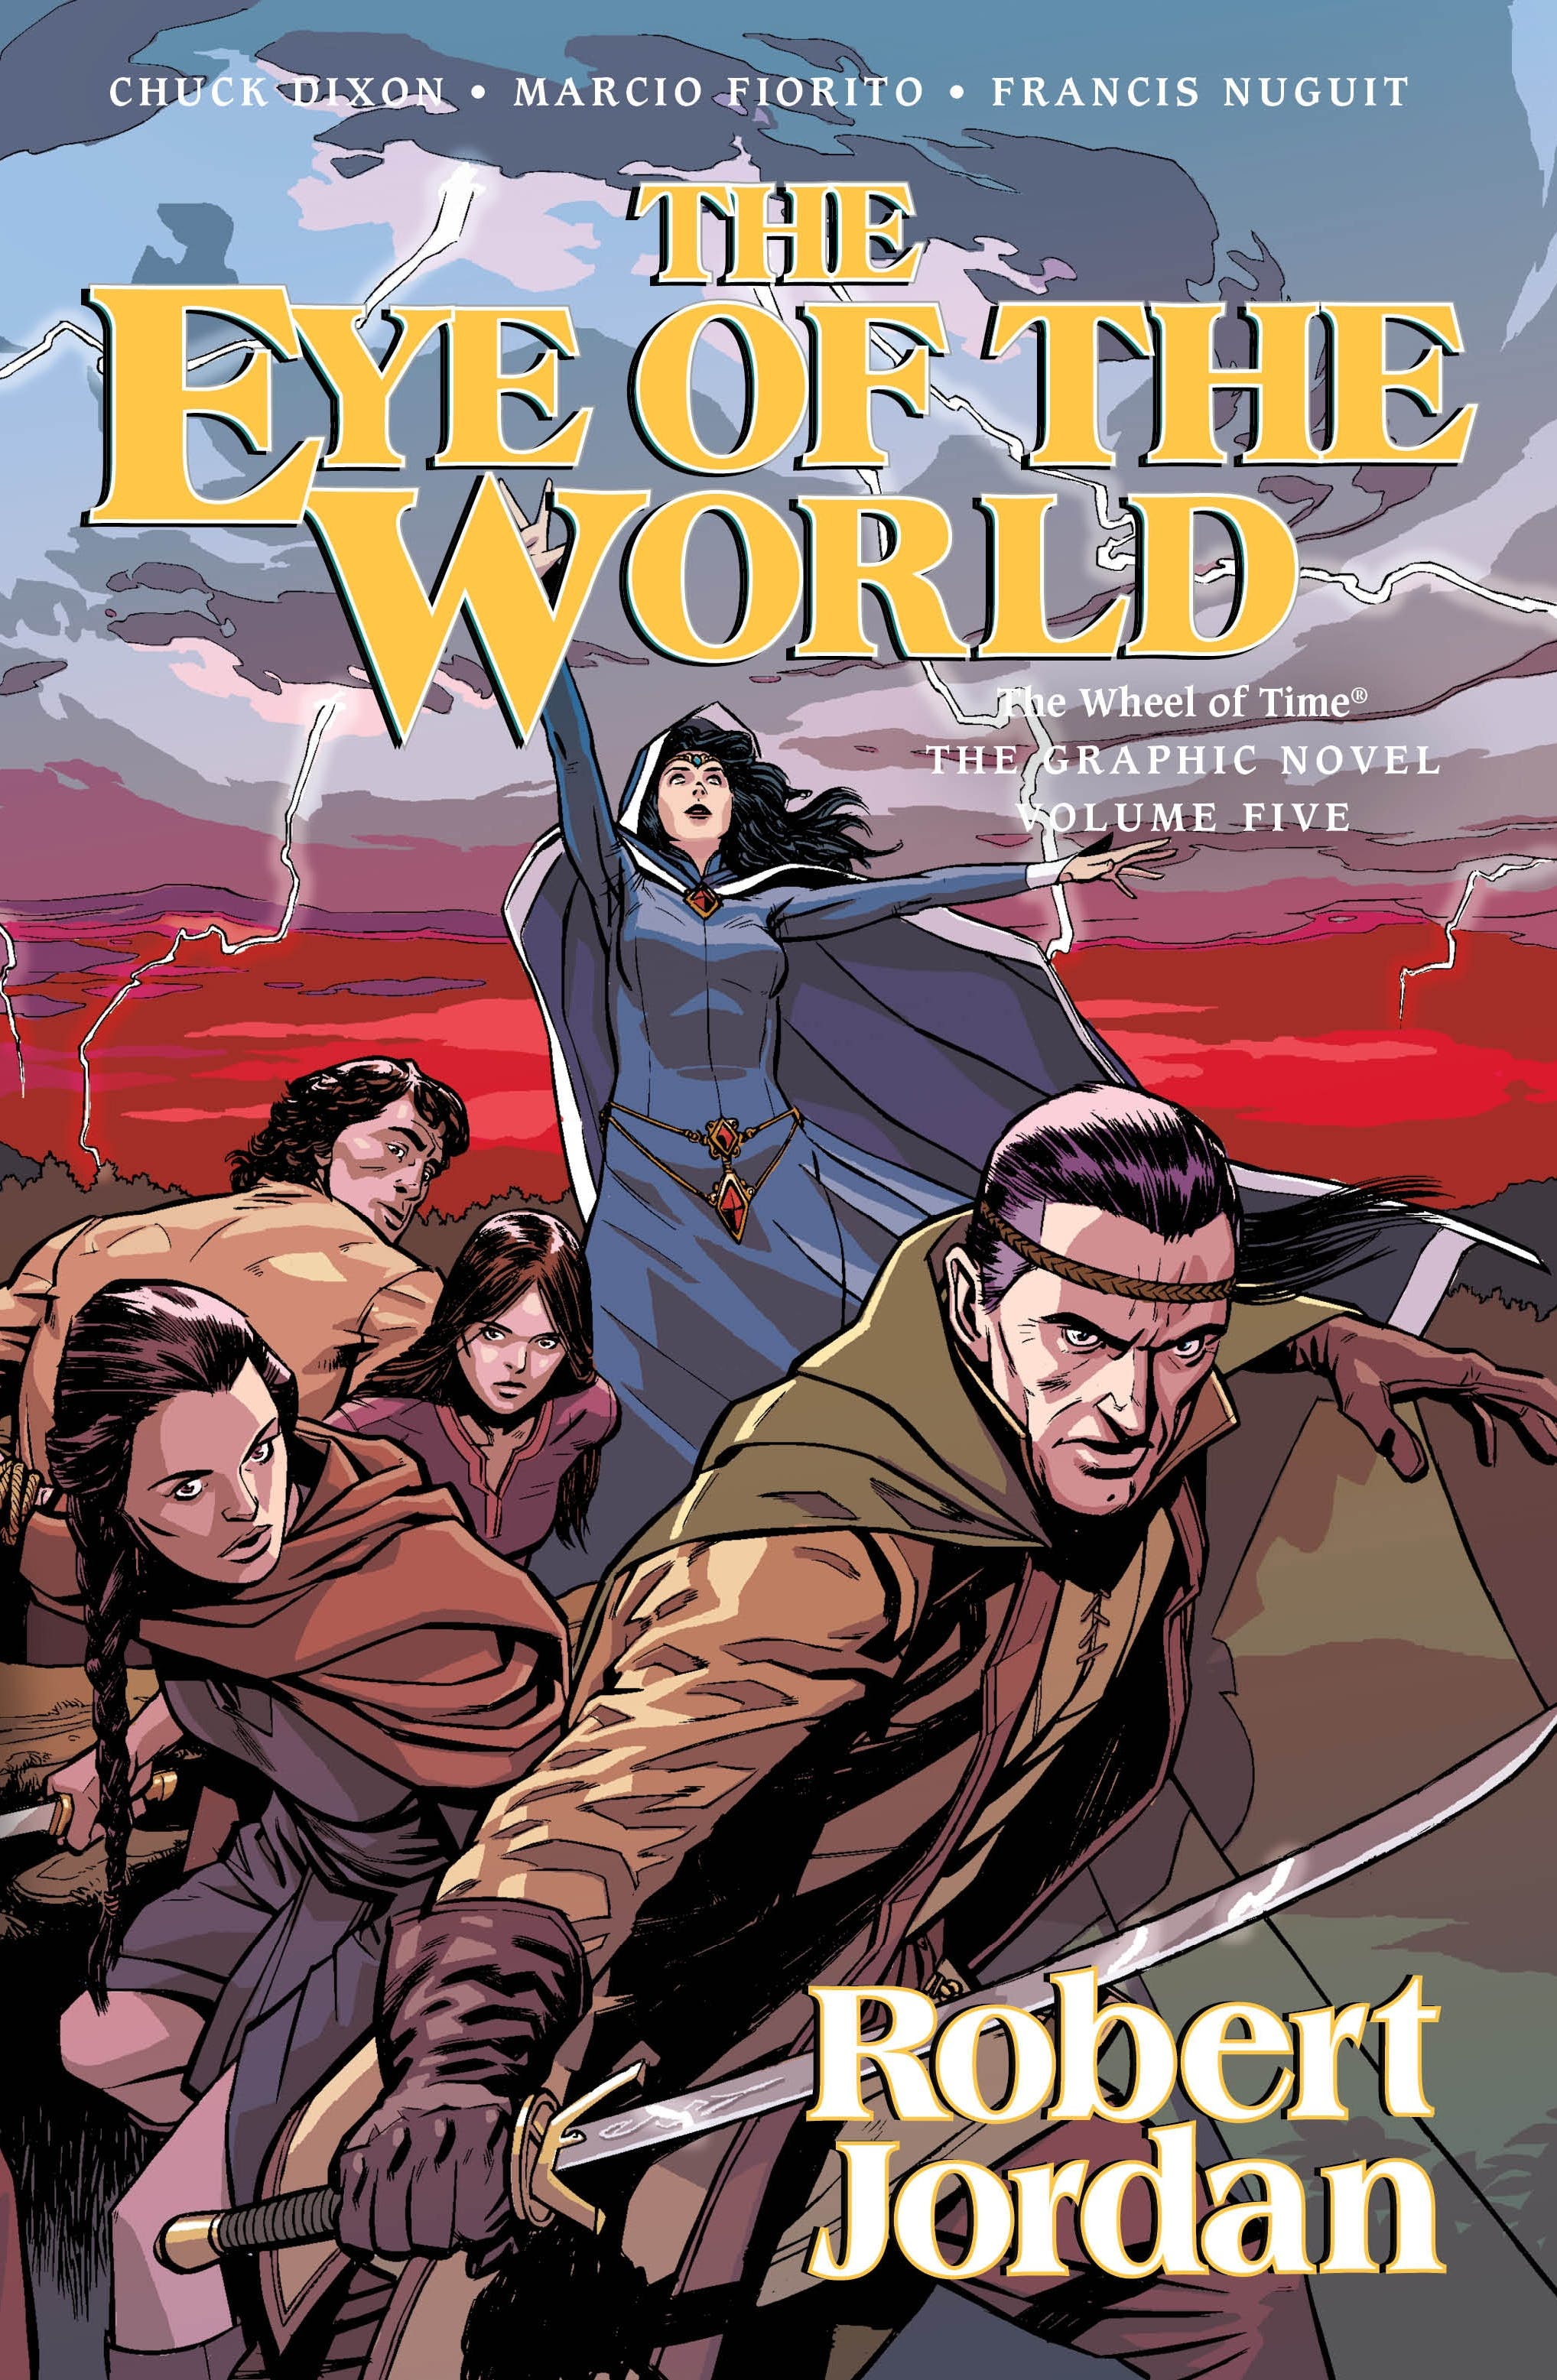 Image of The Eye of the World: The Graphic Novel, Volume Five